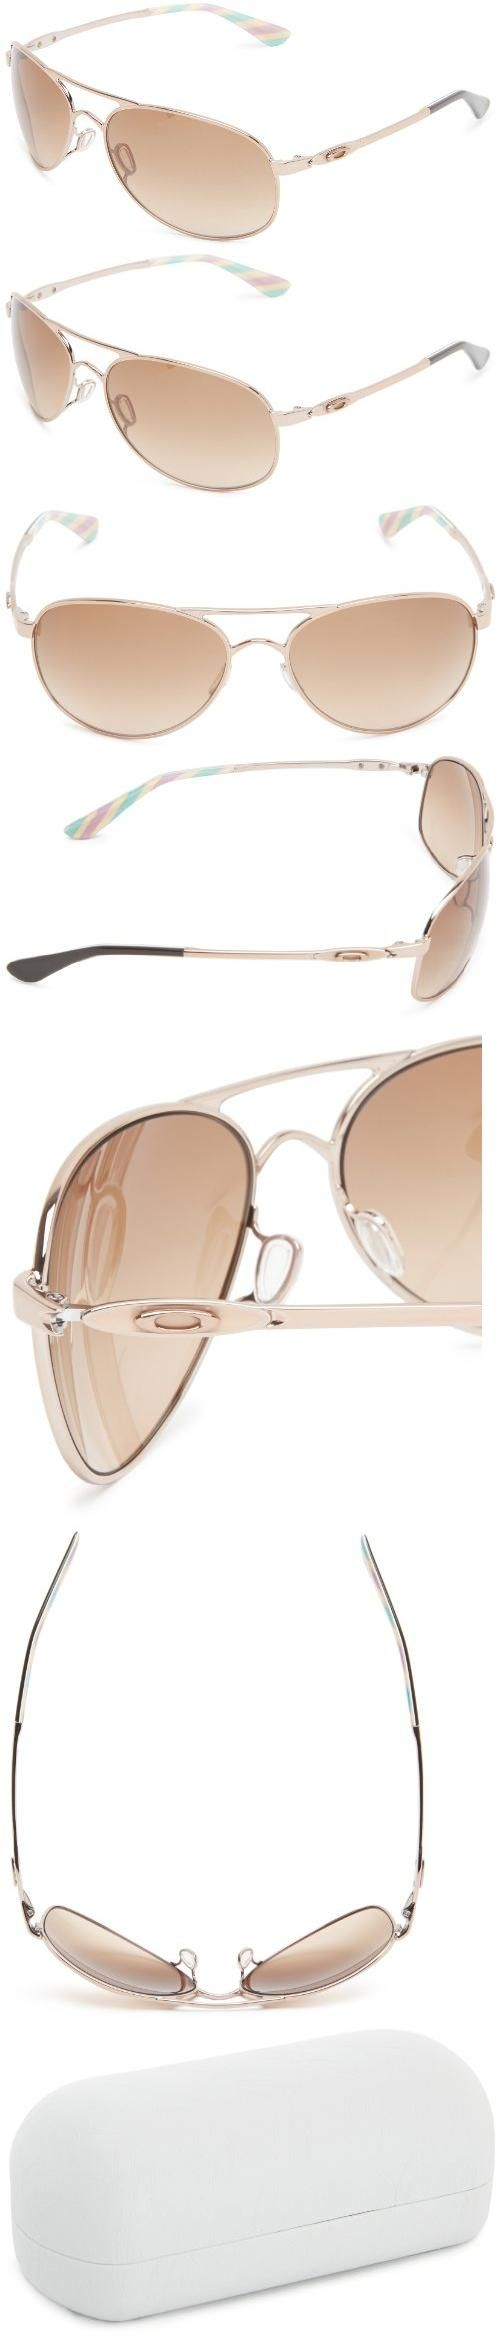 Oakley Aviator Sunglasses, Rose Gold